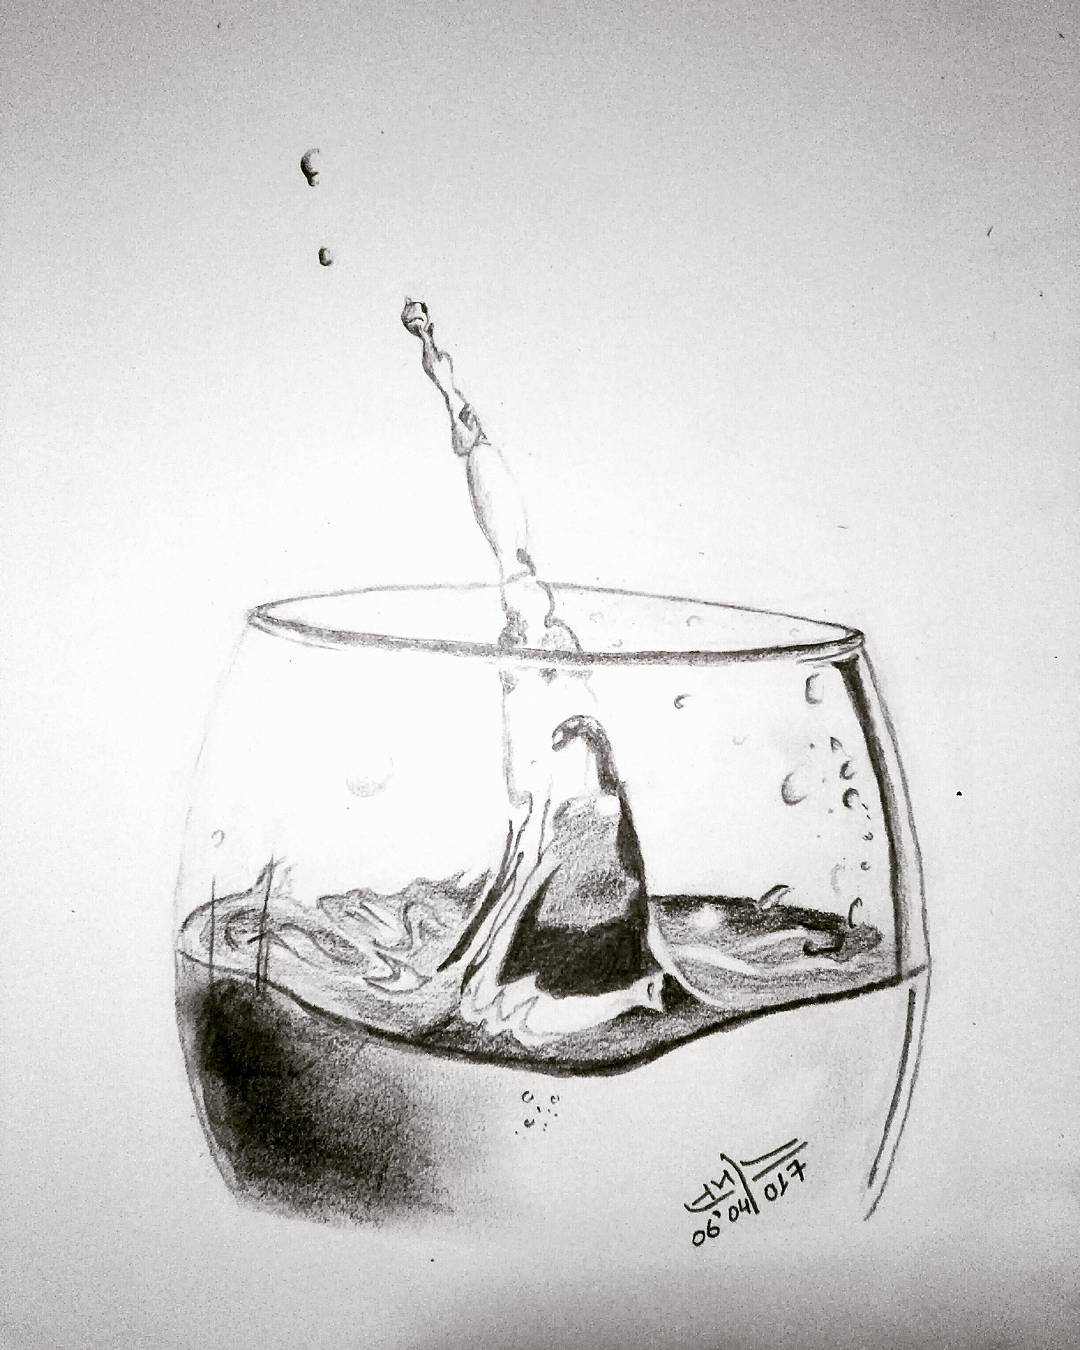 splashed effect of water